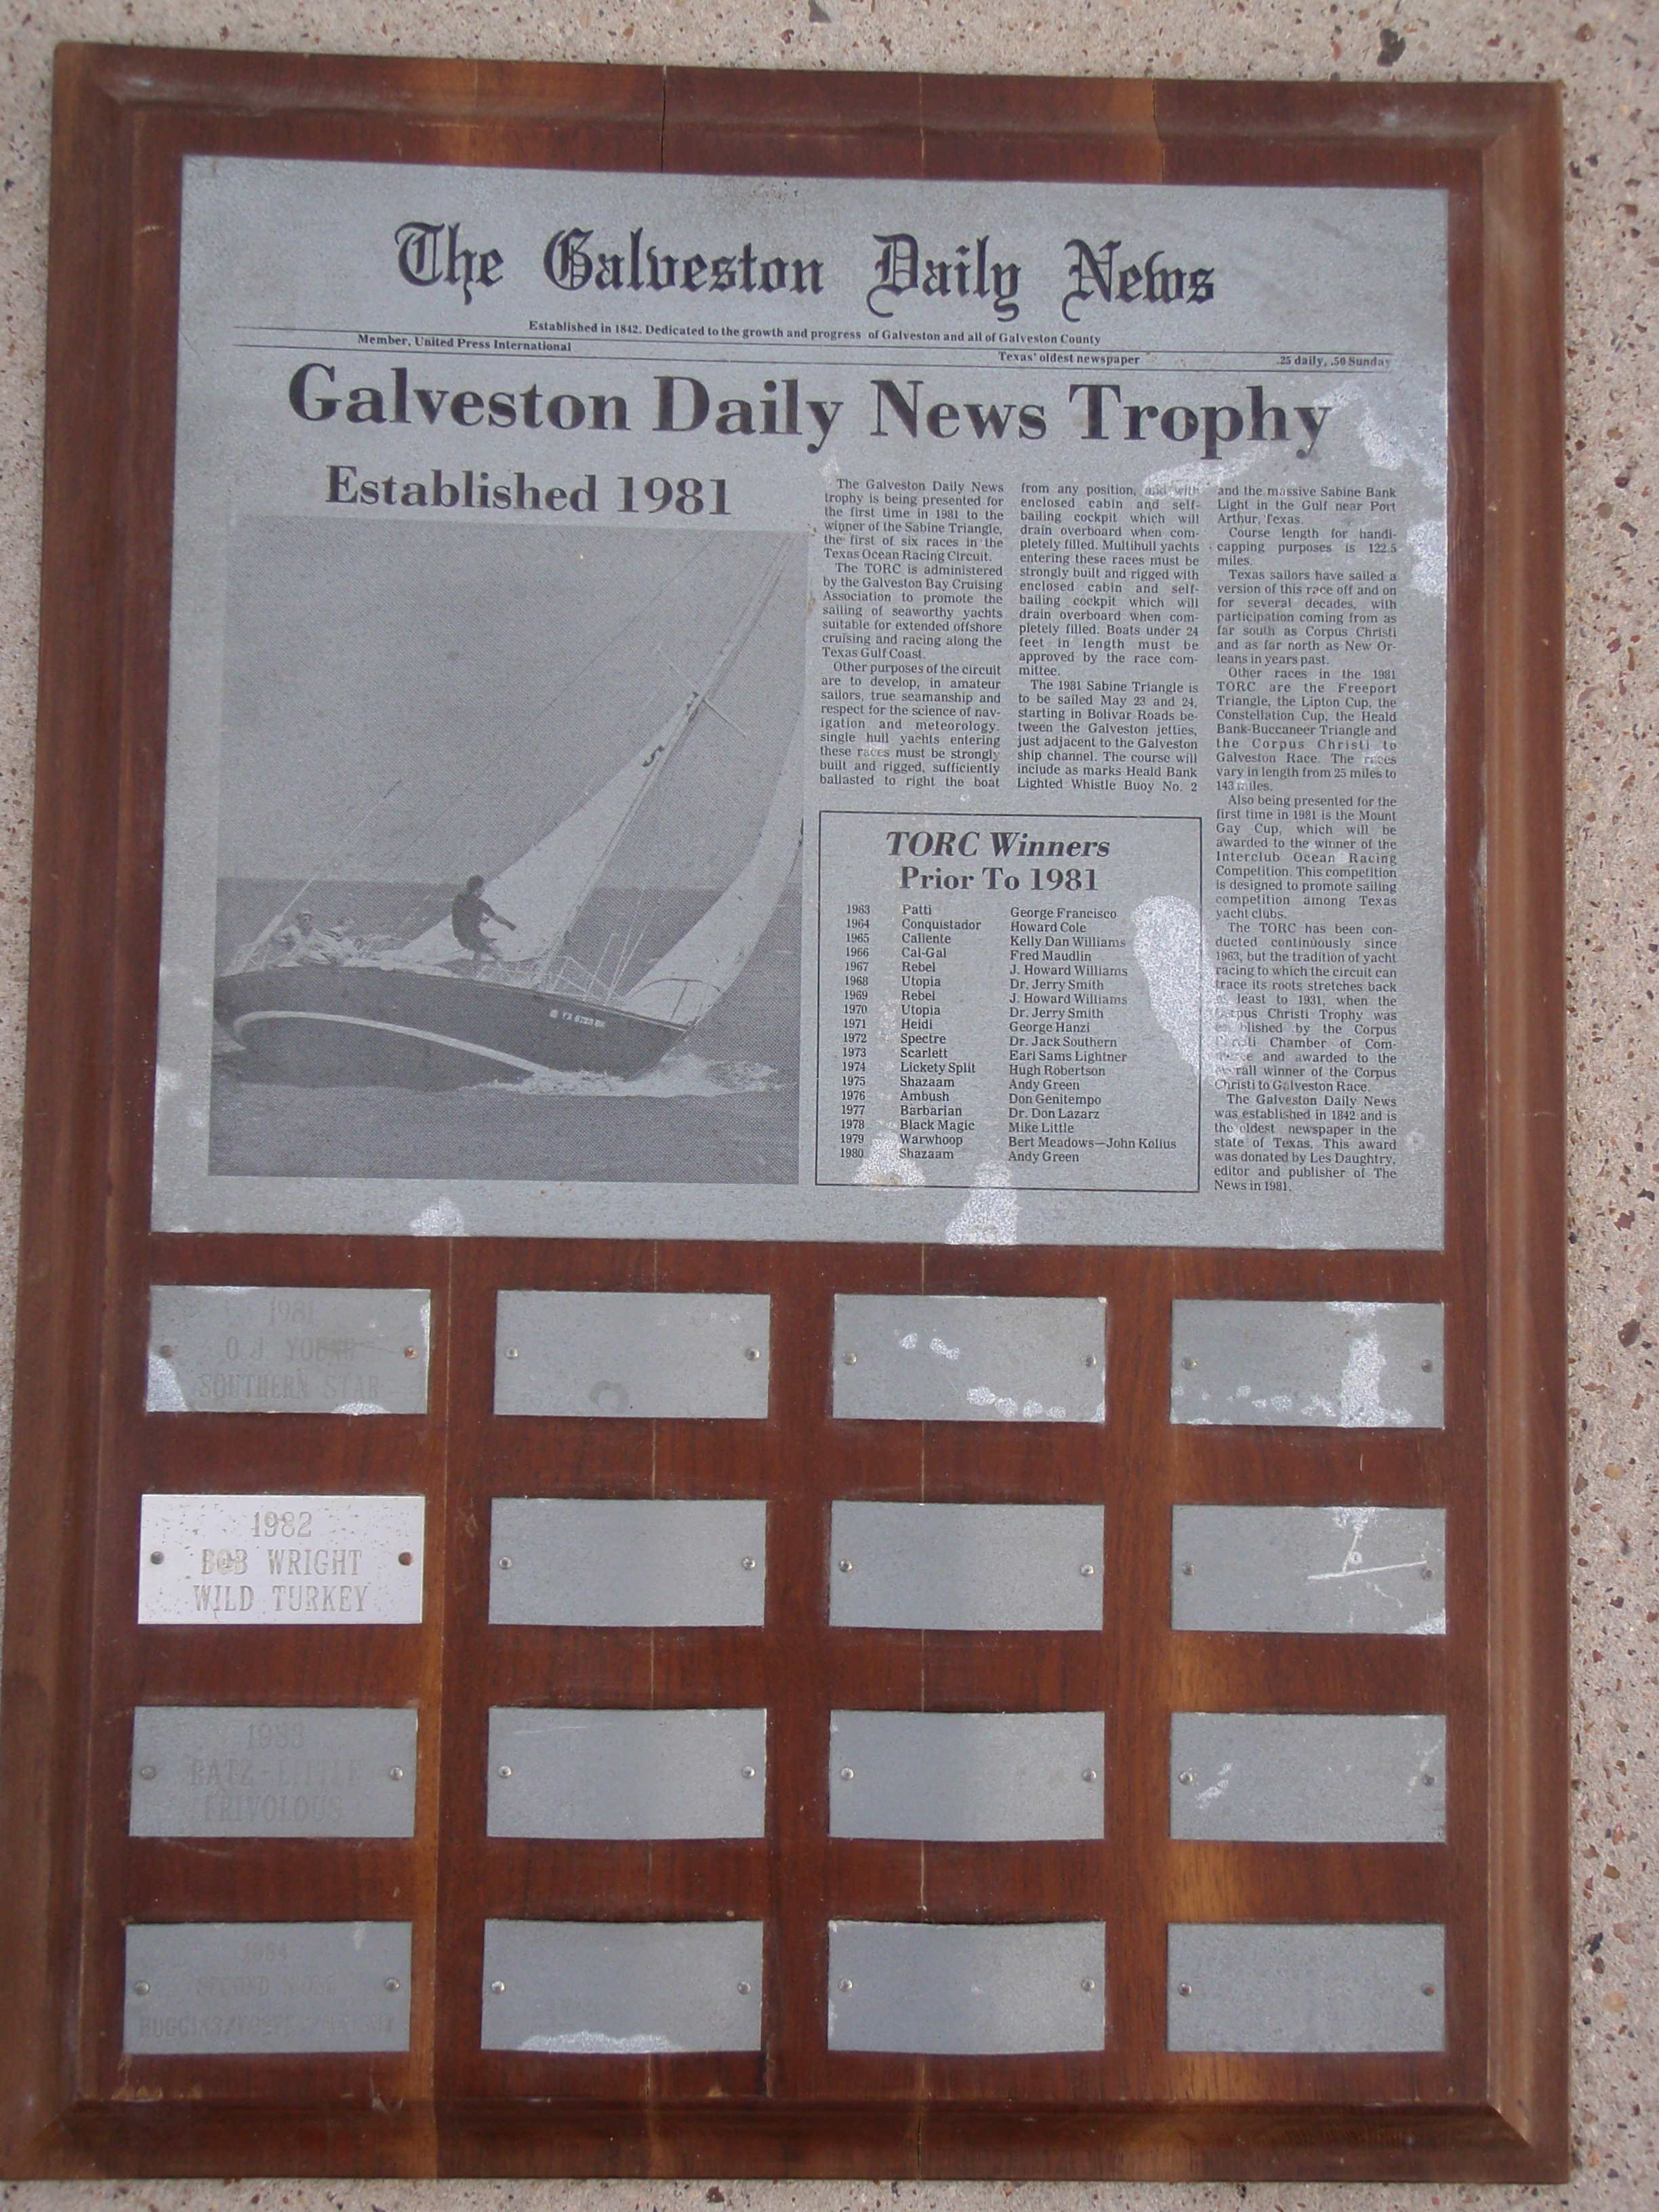 Galveston Daily News Trophy